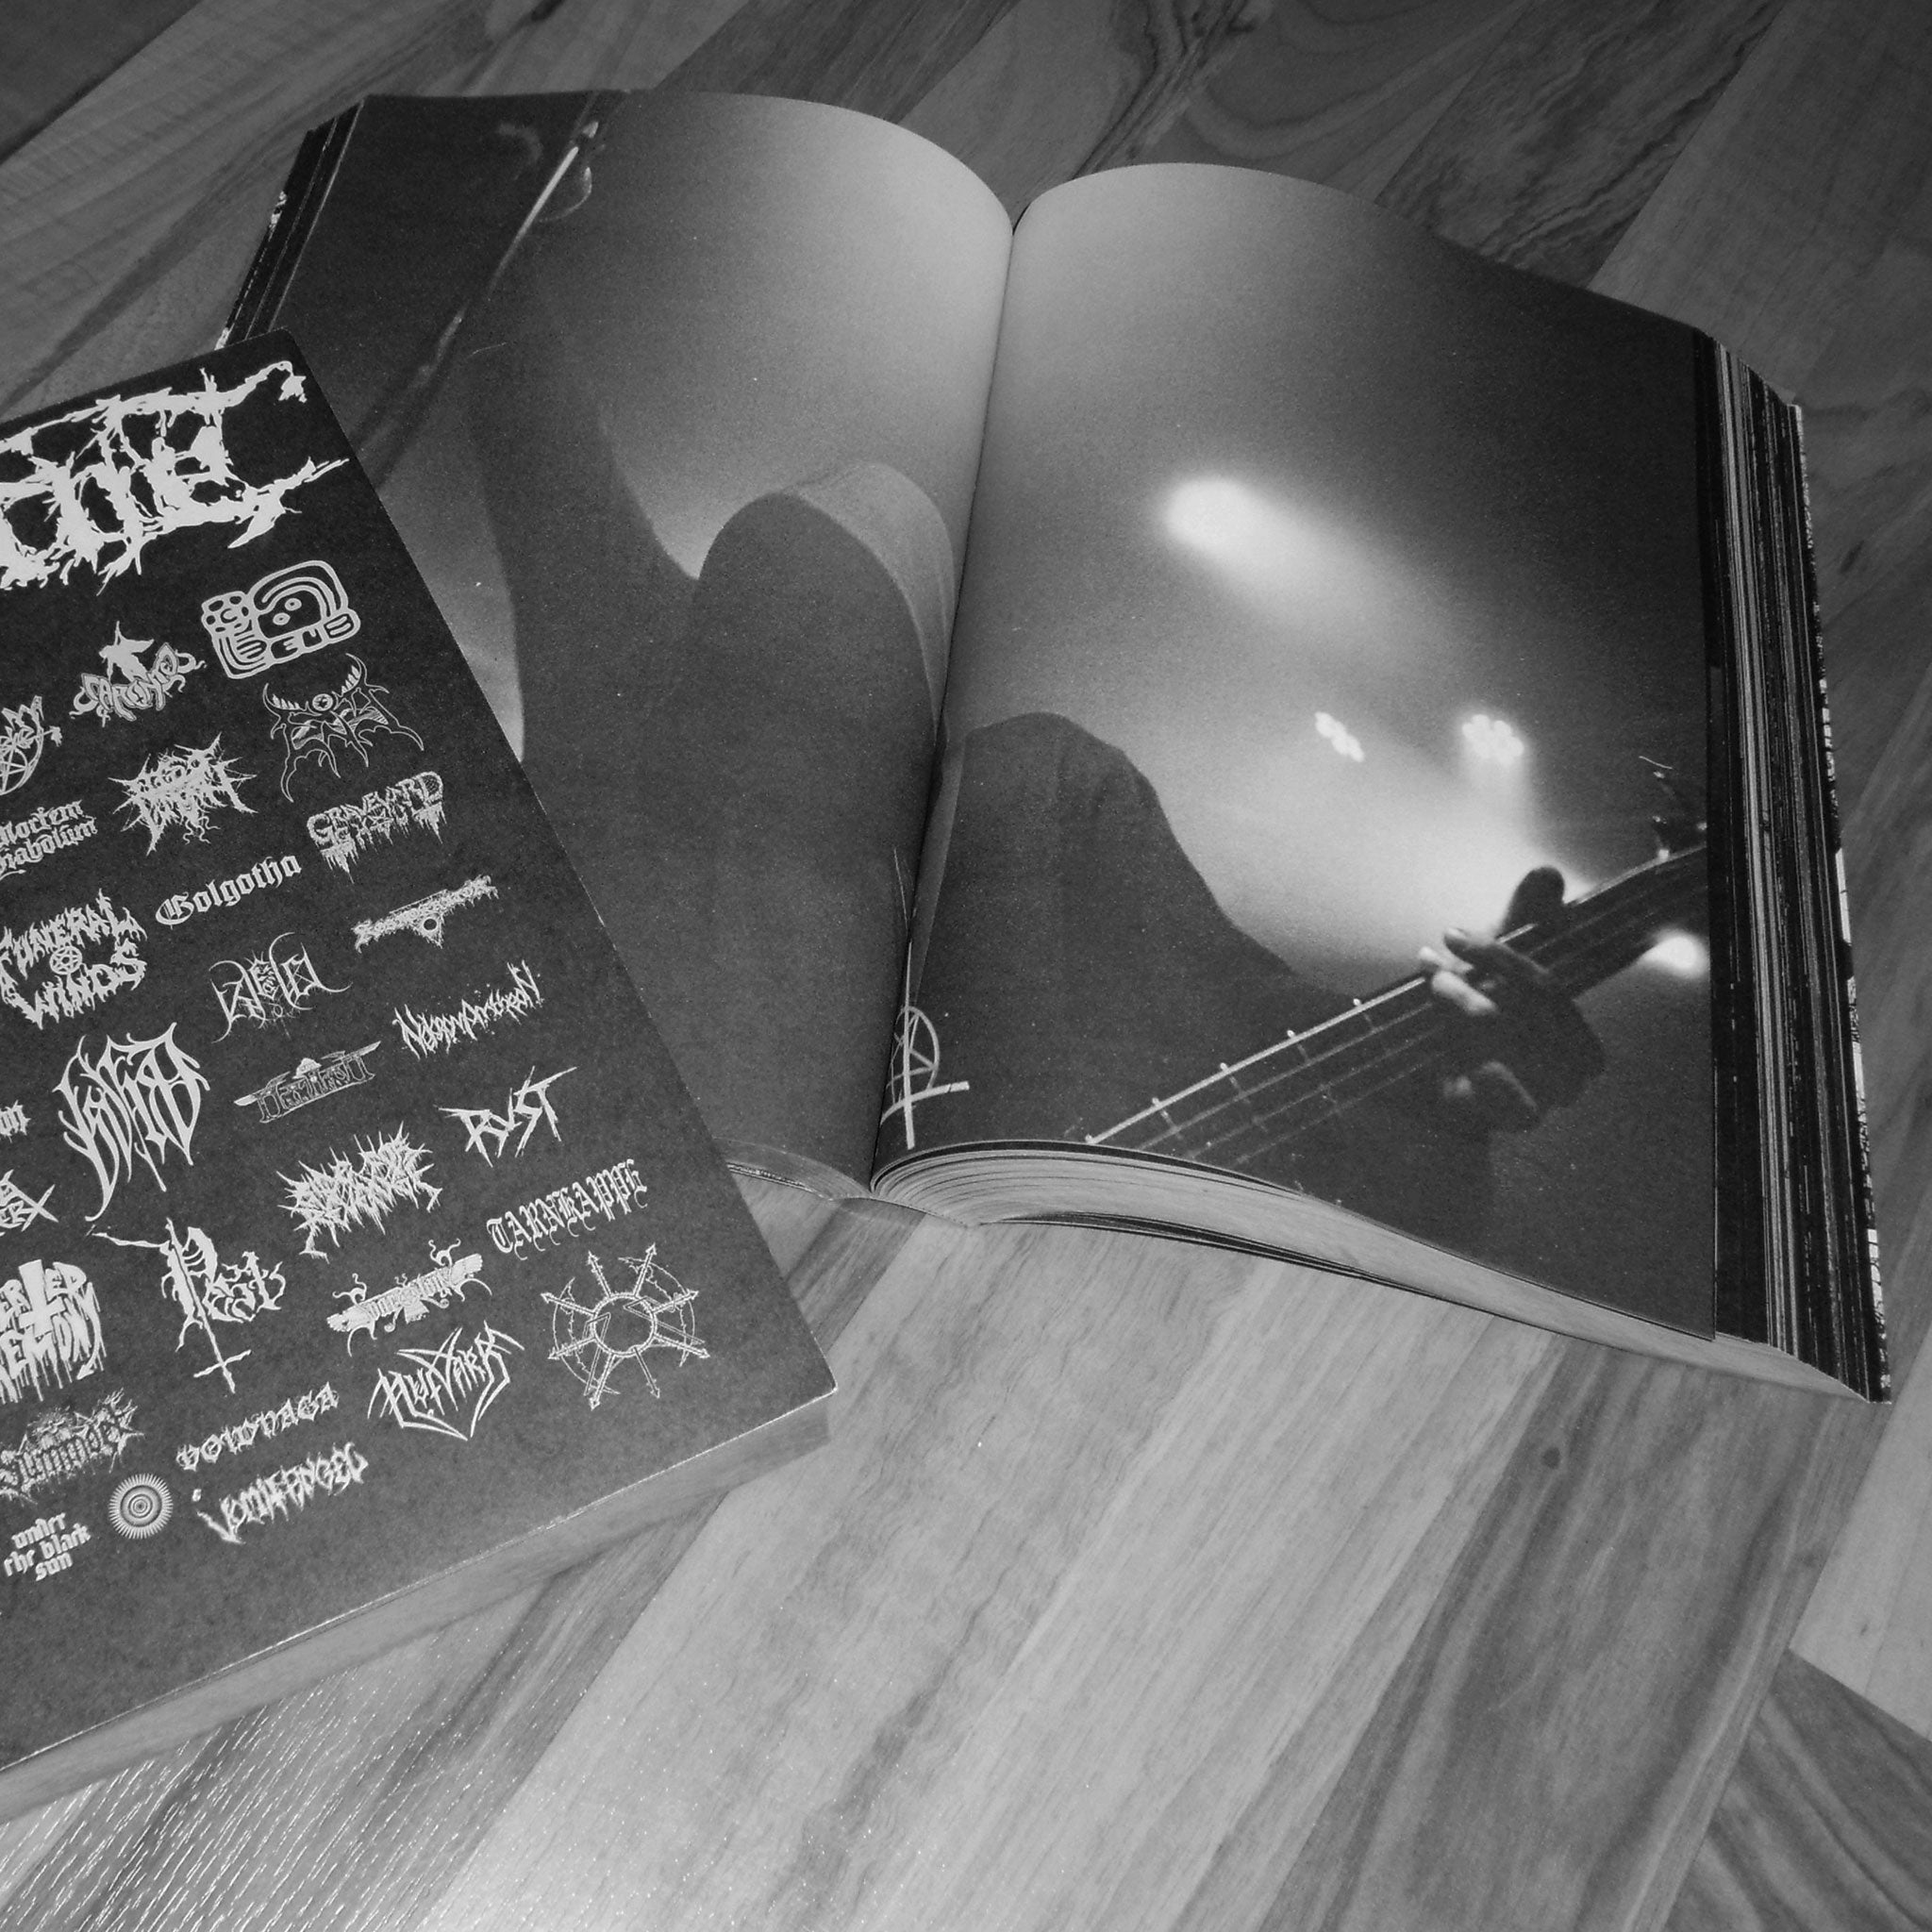 Haalicht - Issue 1 (Zine)